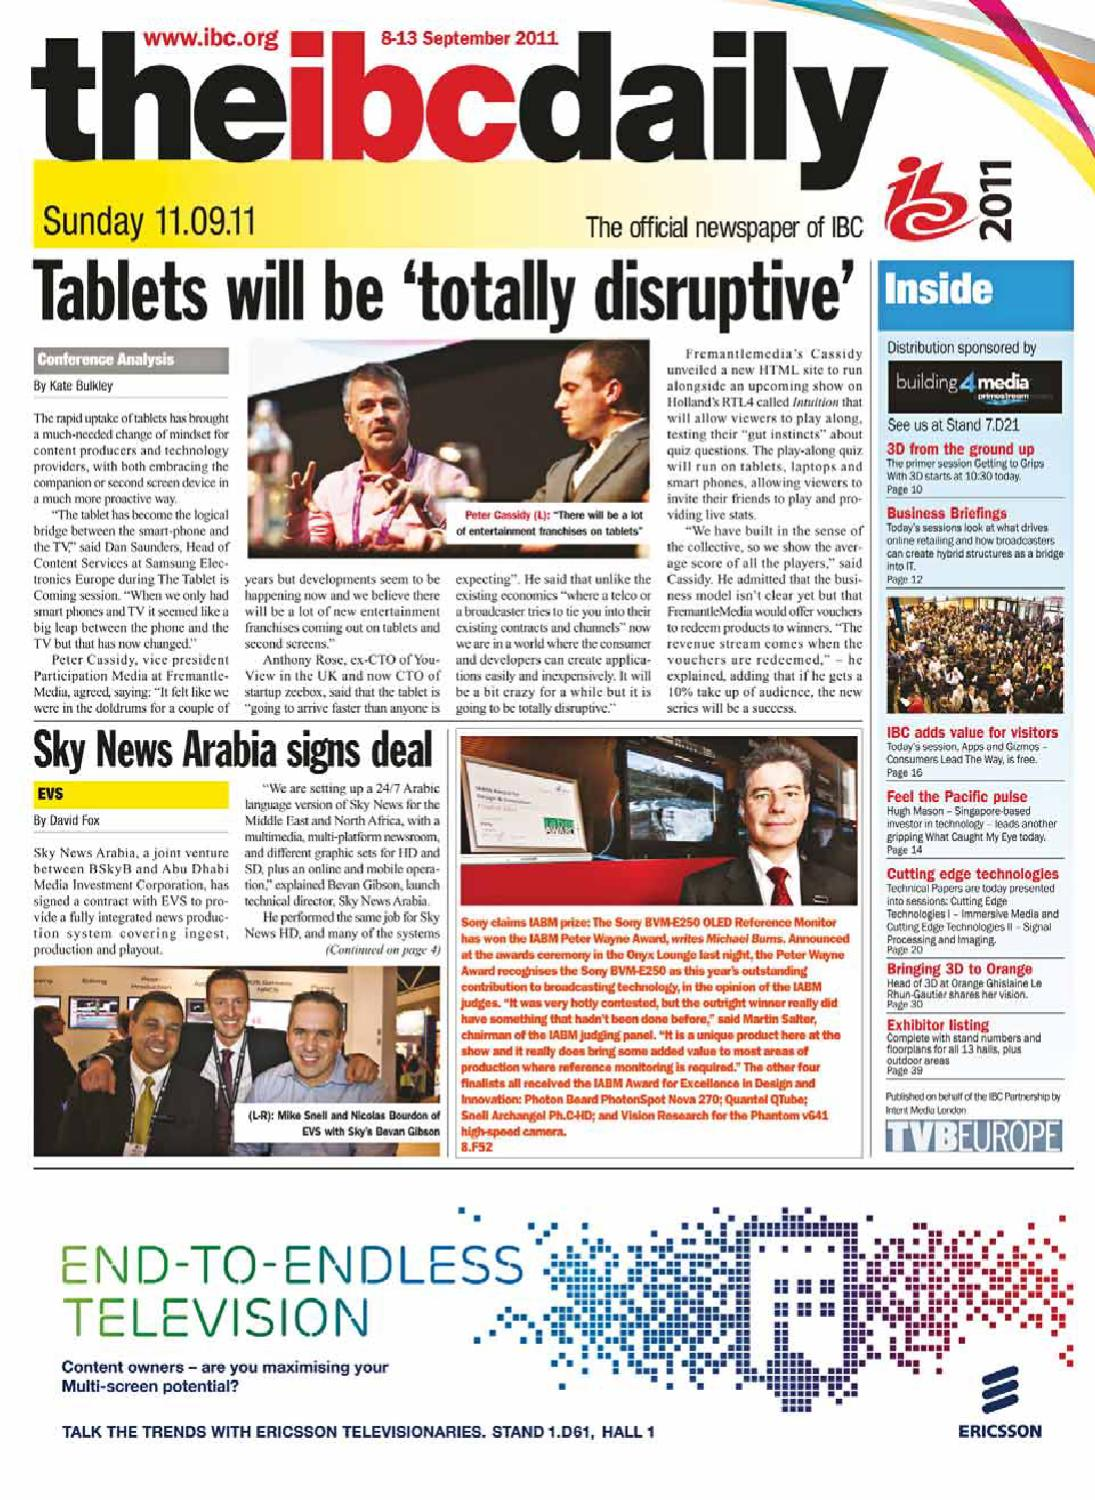 The IBC Daily 2011 – 11/9/11 Issue by Intent Media (now Newbay Media